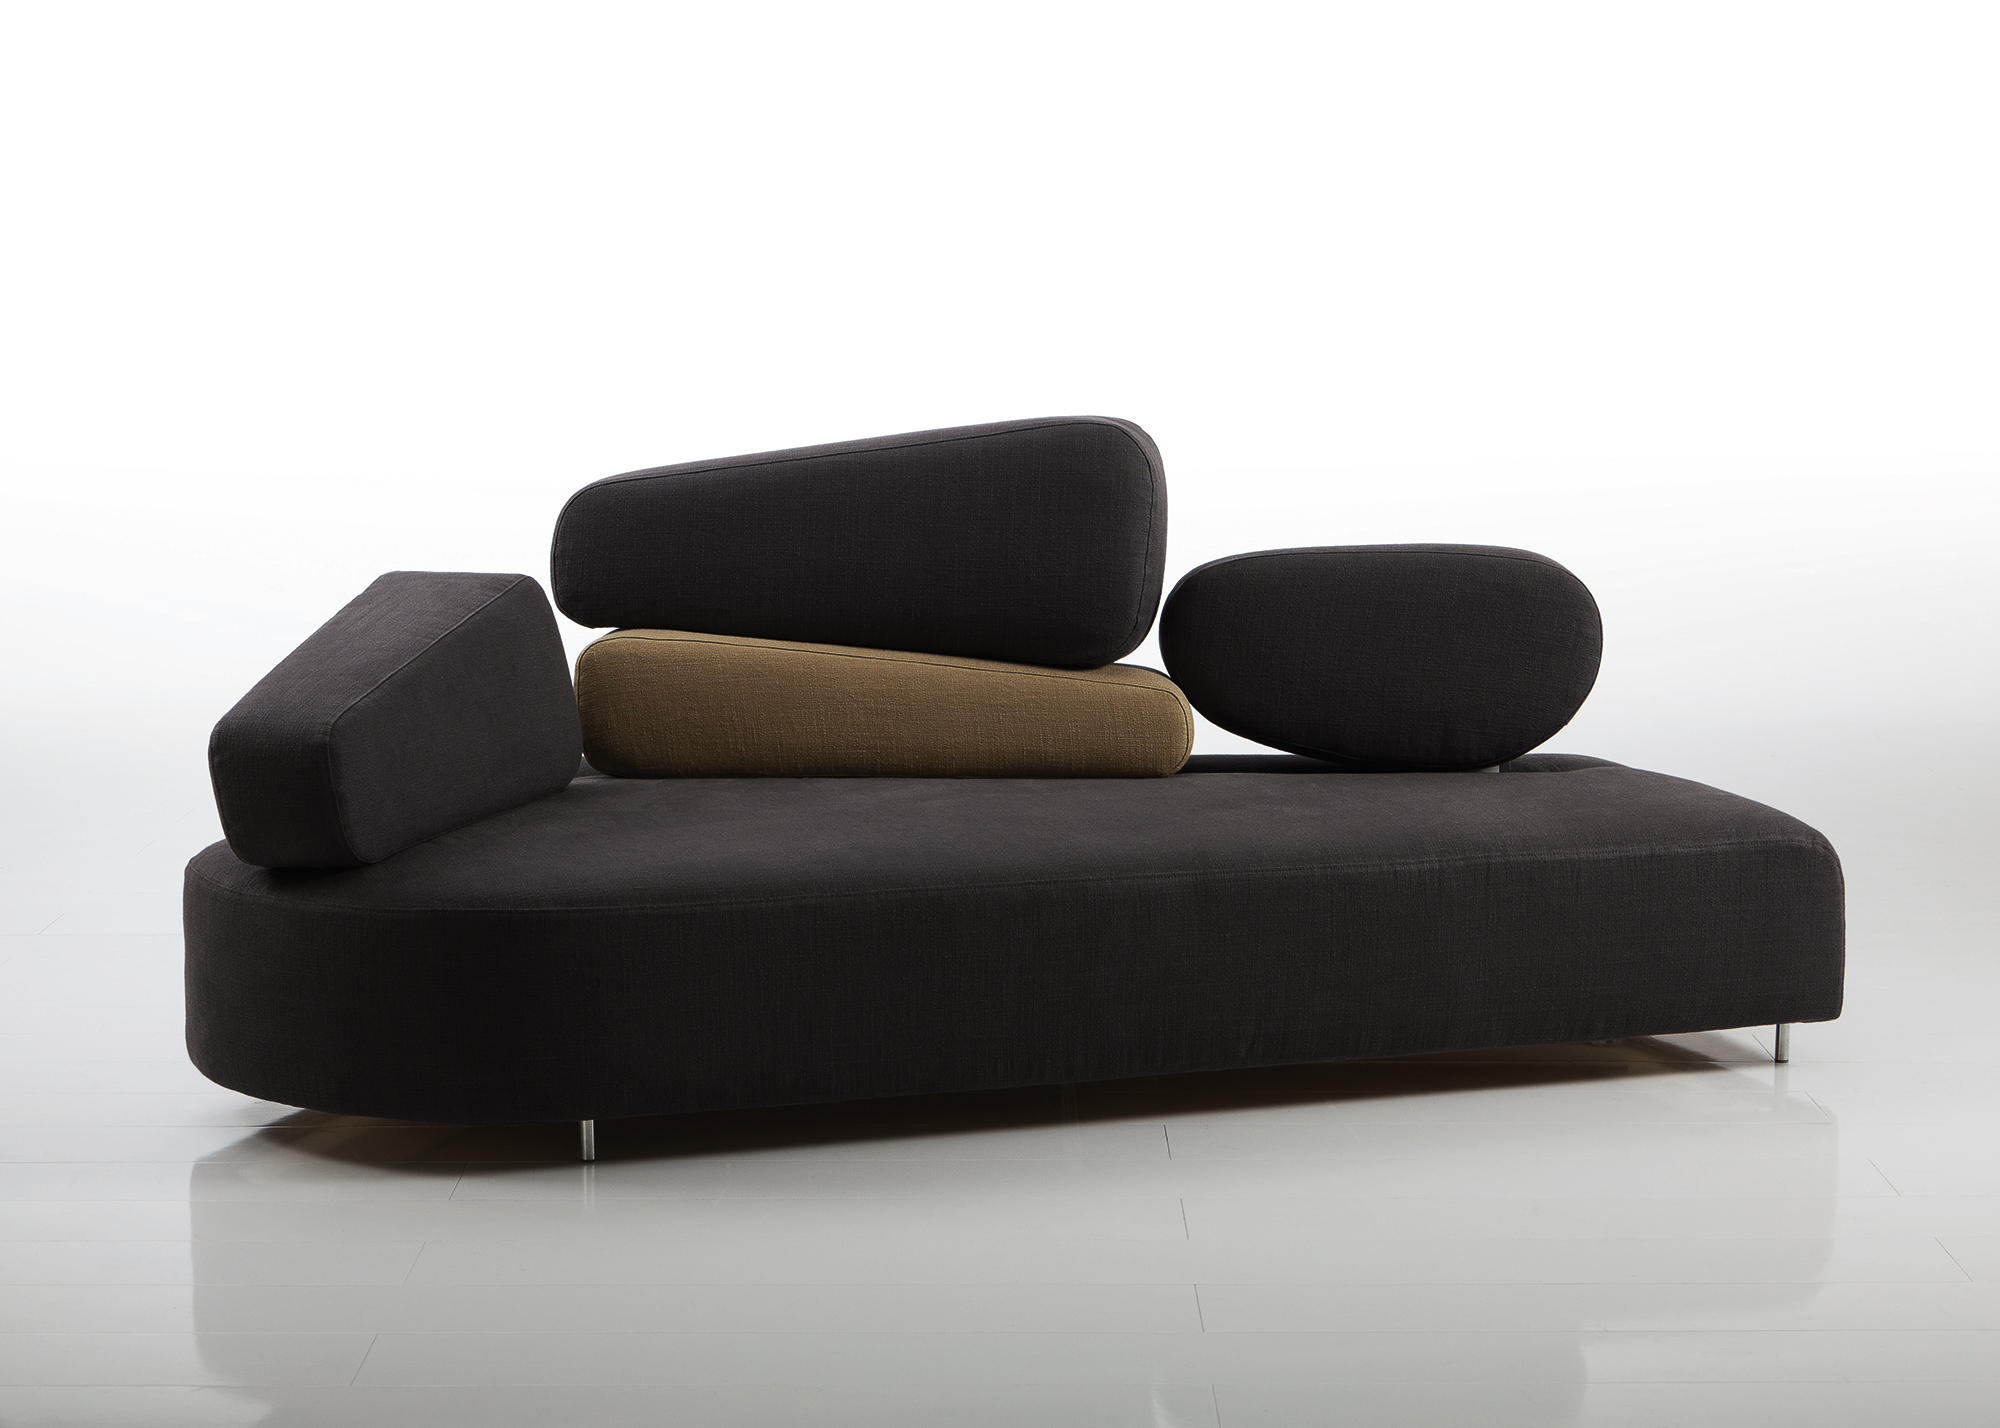 Mosspink sofa by Brühl